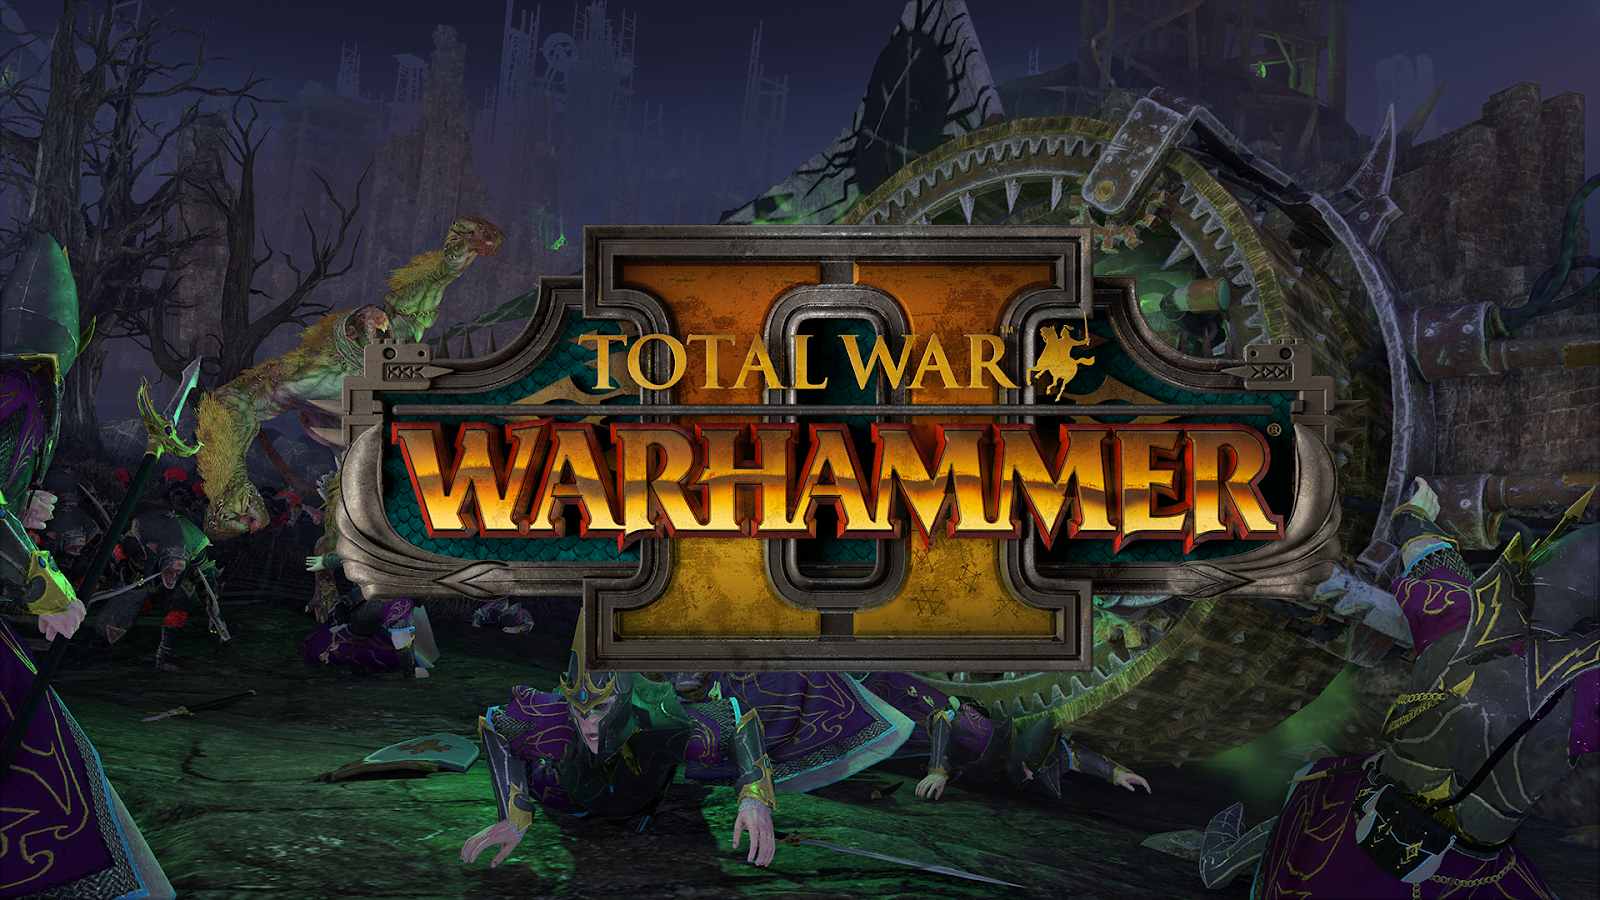 Total War Warhammer 2 Full Version Free Download